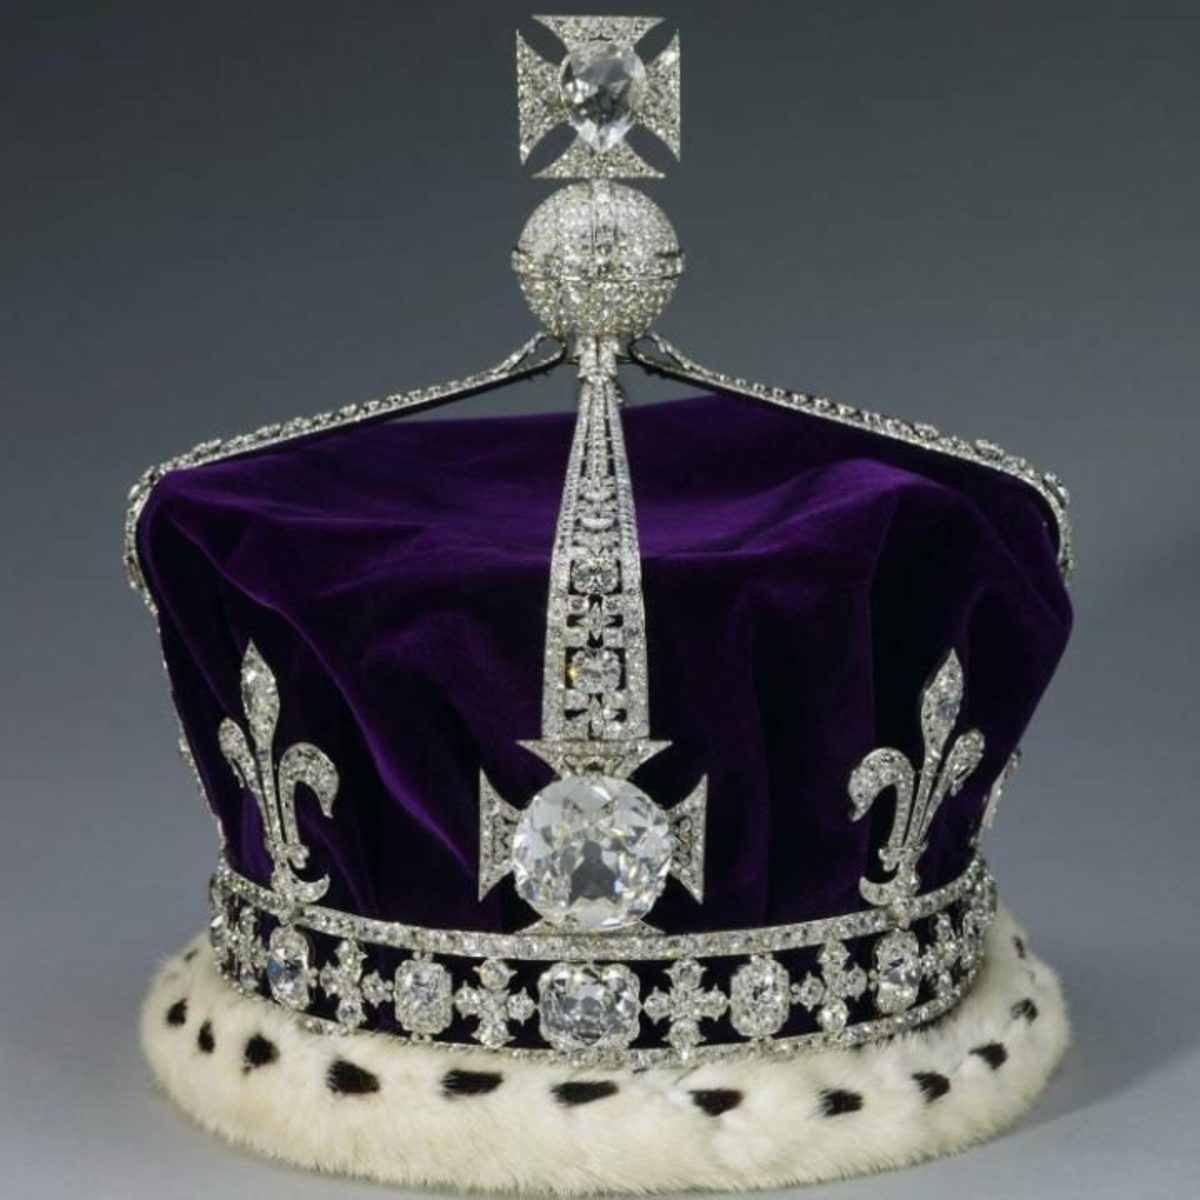 The Koh-i-Noor diamond on the front is one of 2,800 other diamonds on the Queen Mother's Crown.